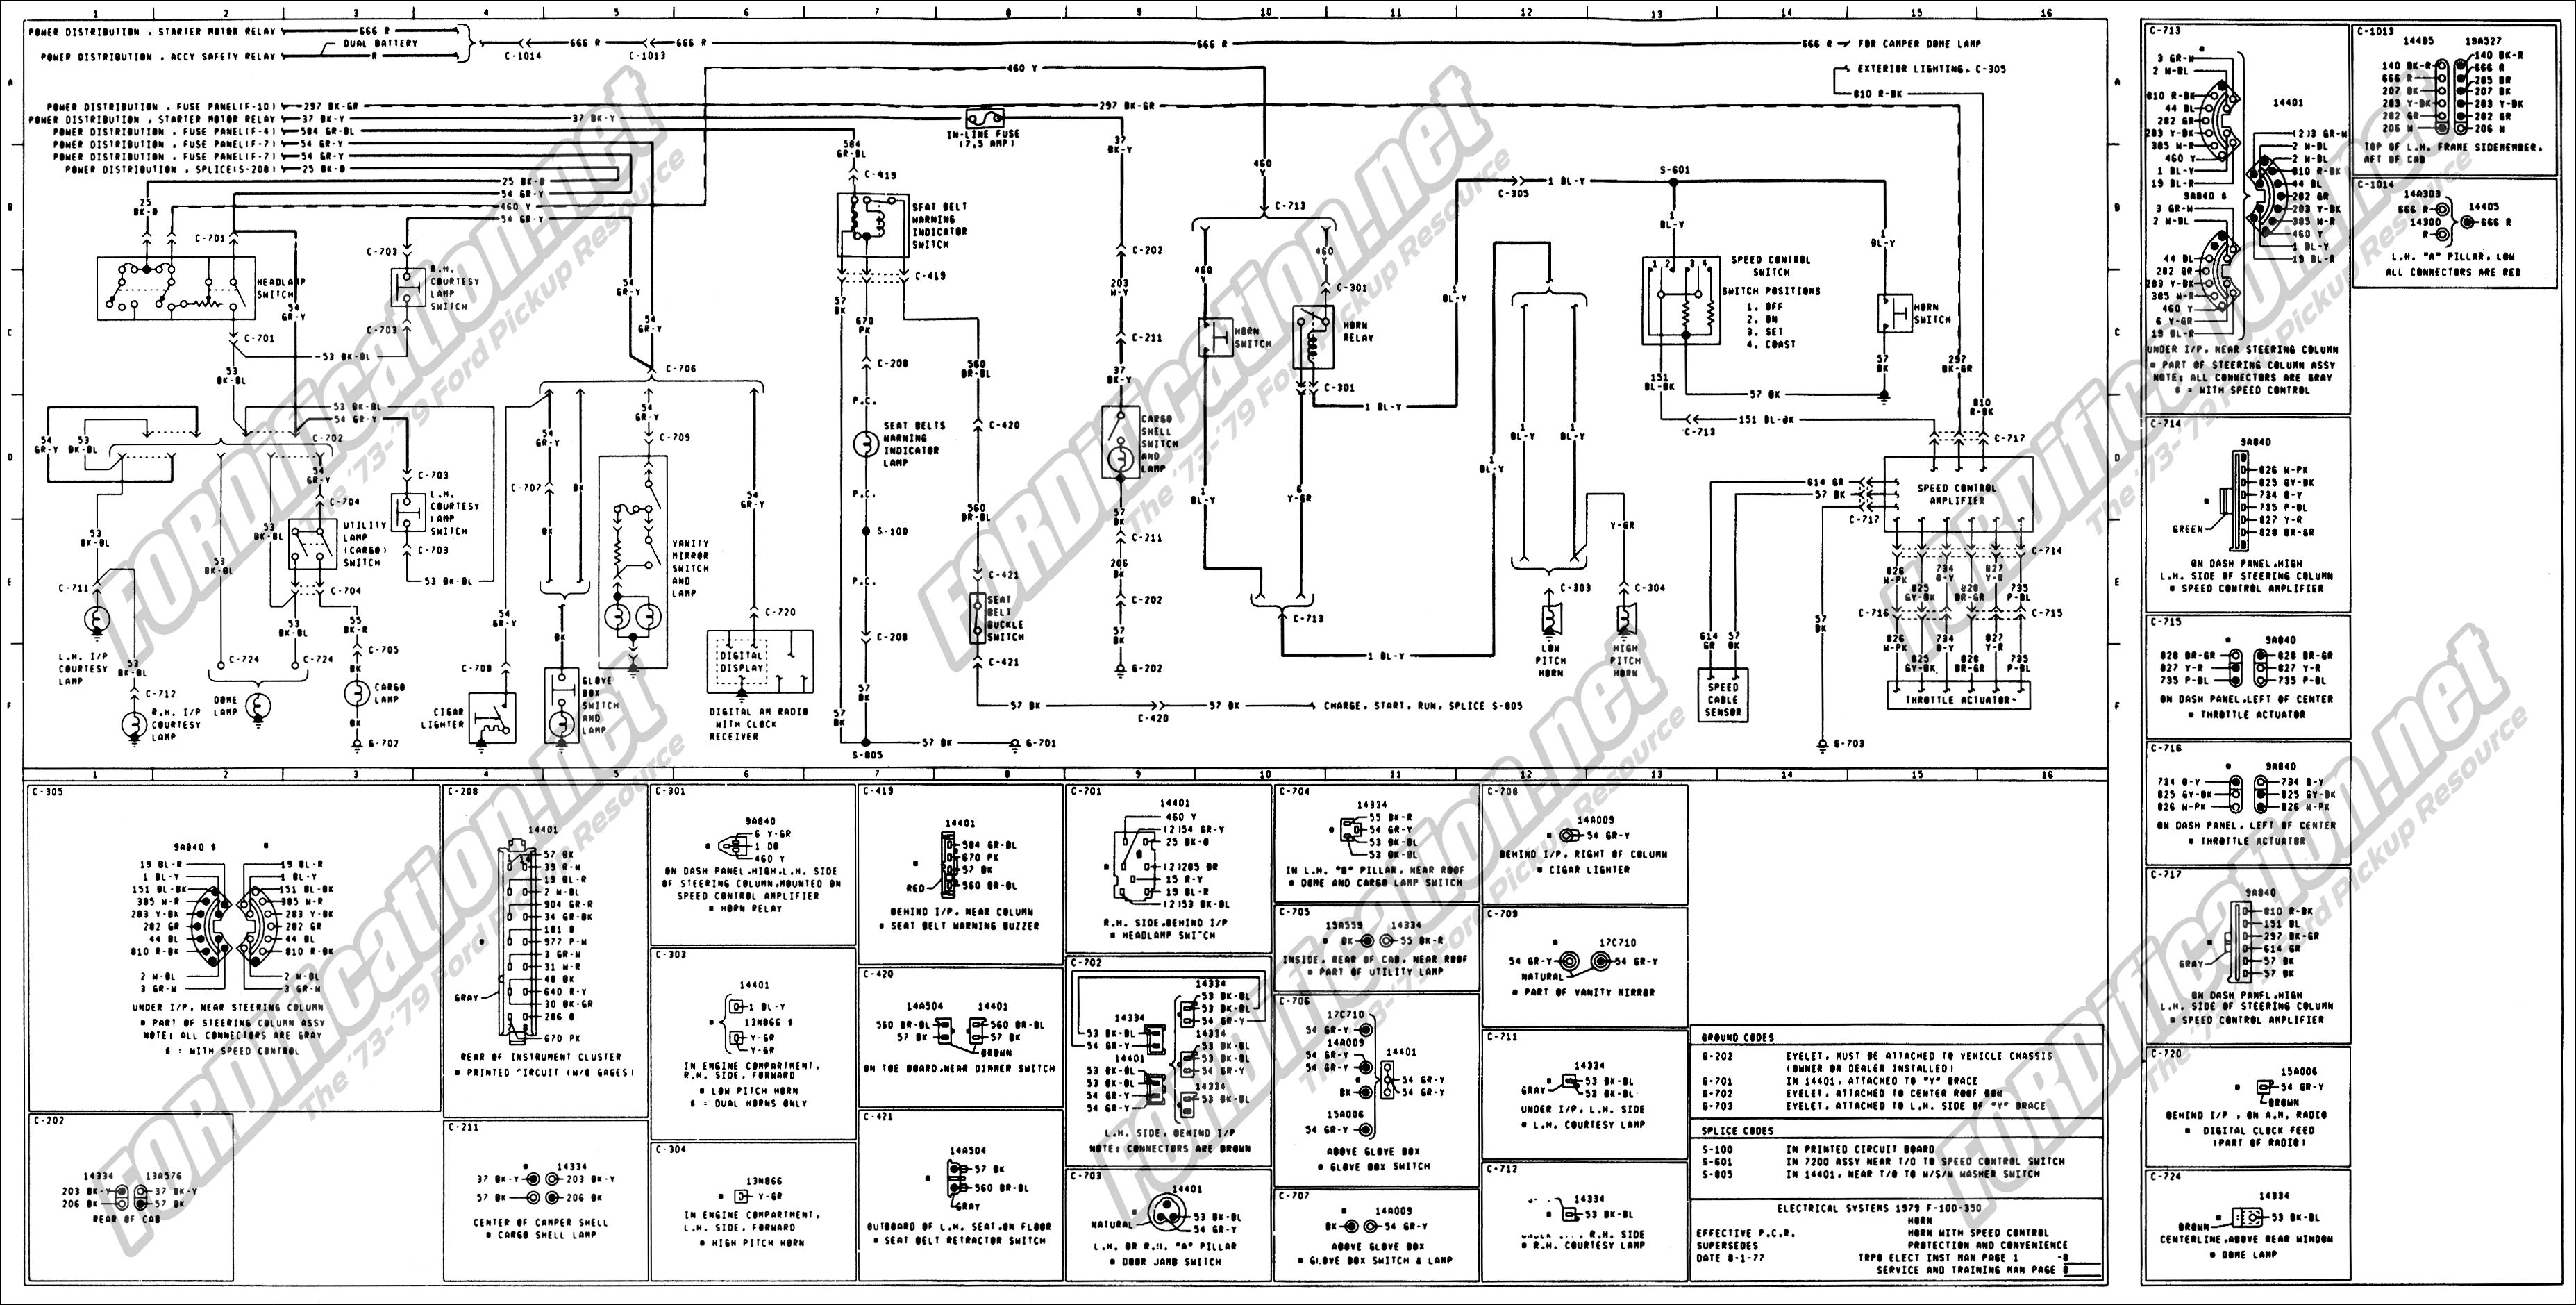 wiring_79master_8of9 1979 factory cargo light ford truck enthusiasts forums 2008 Ford F-250 Wiring Diagram at crackthecode.co